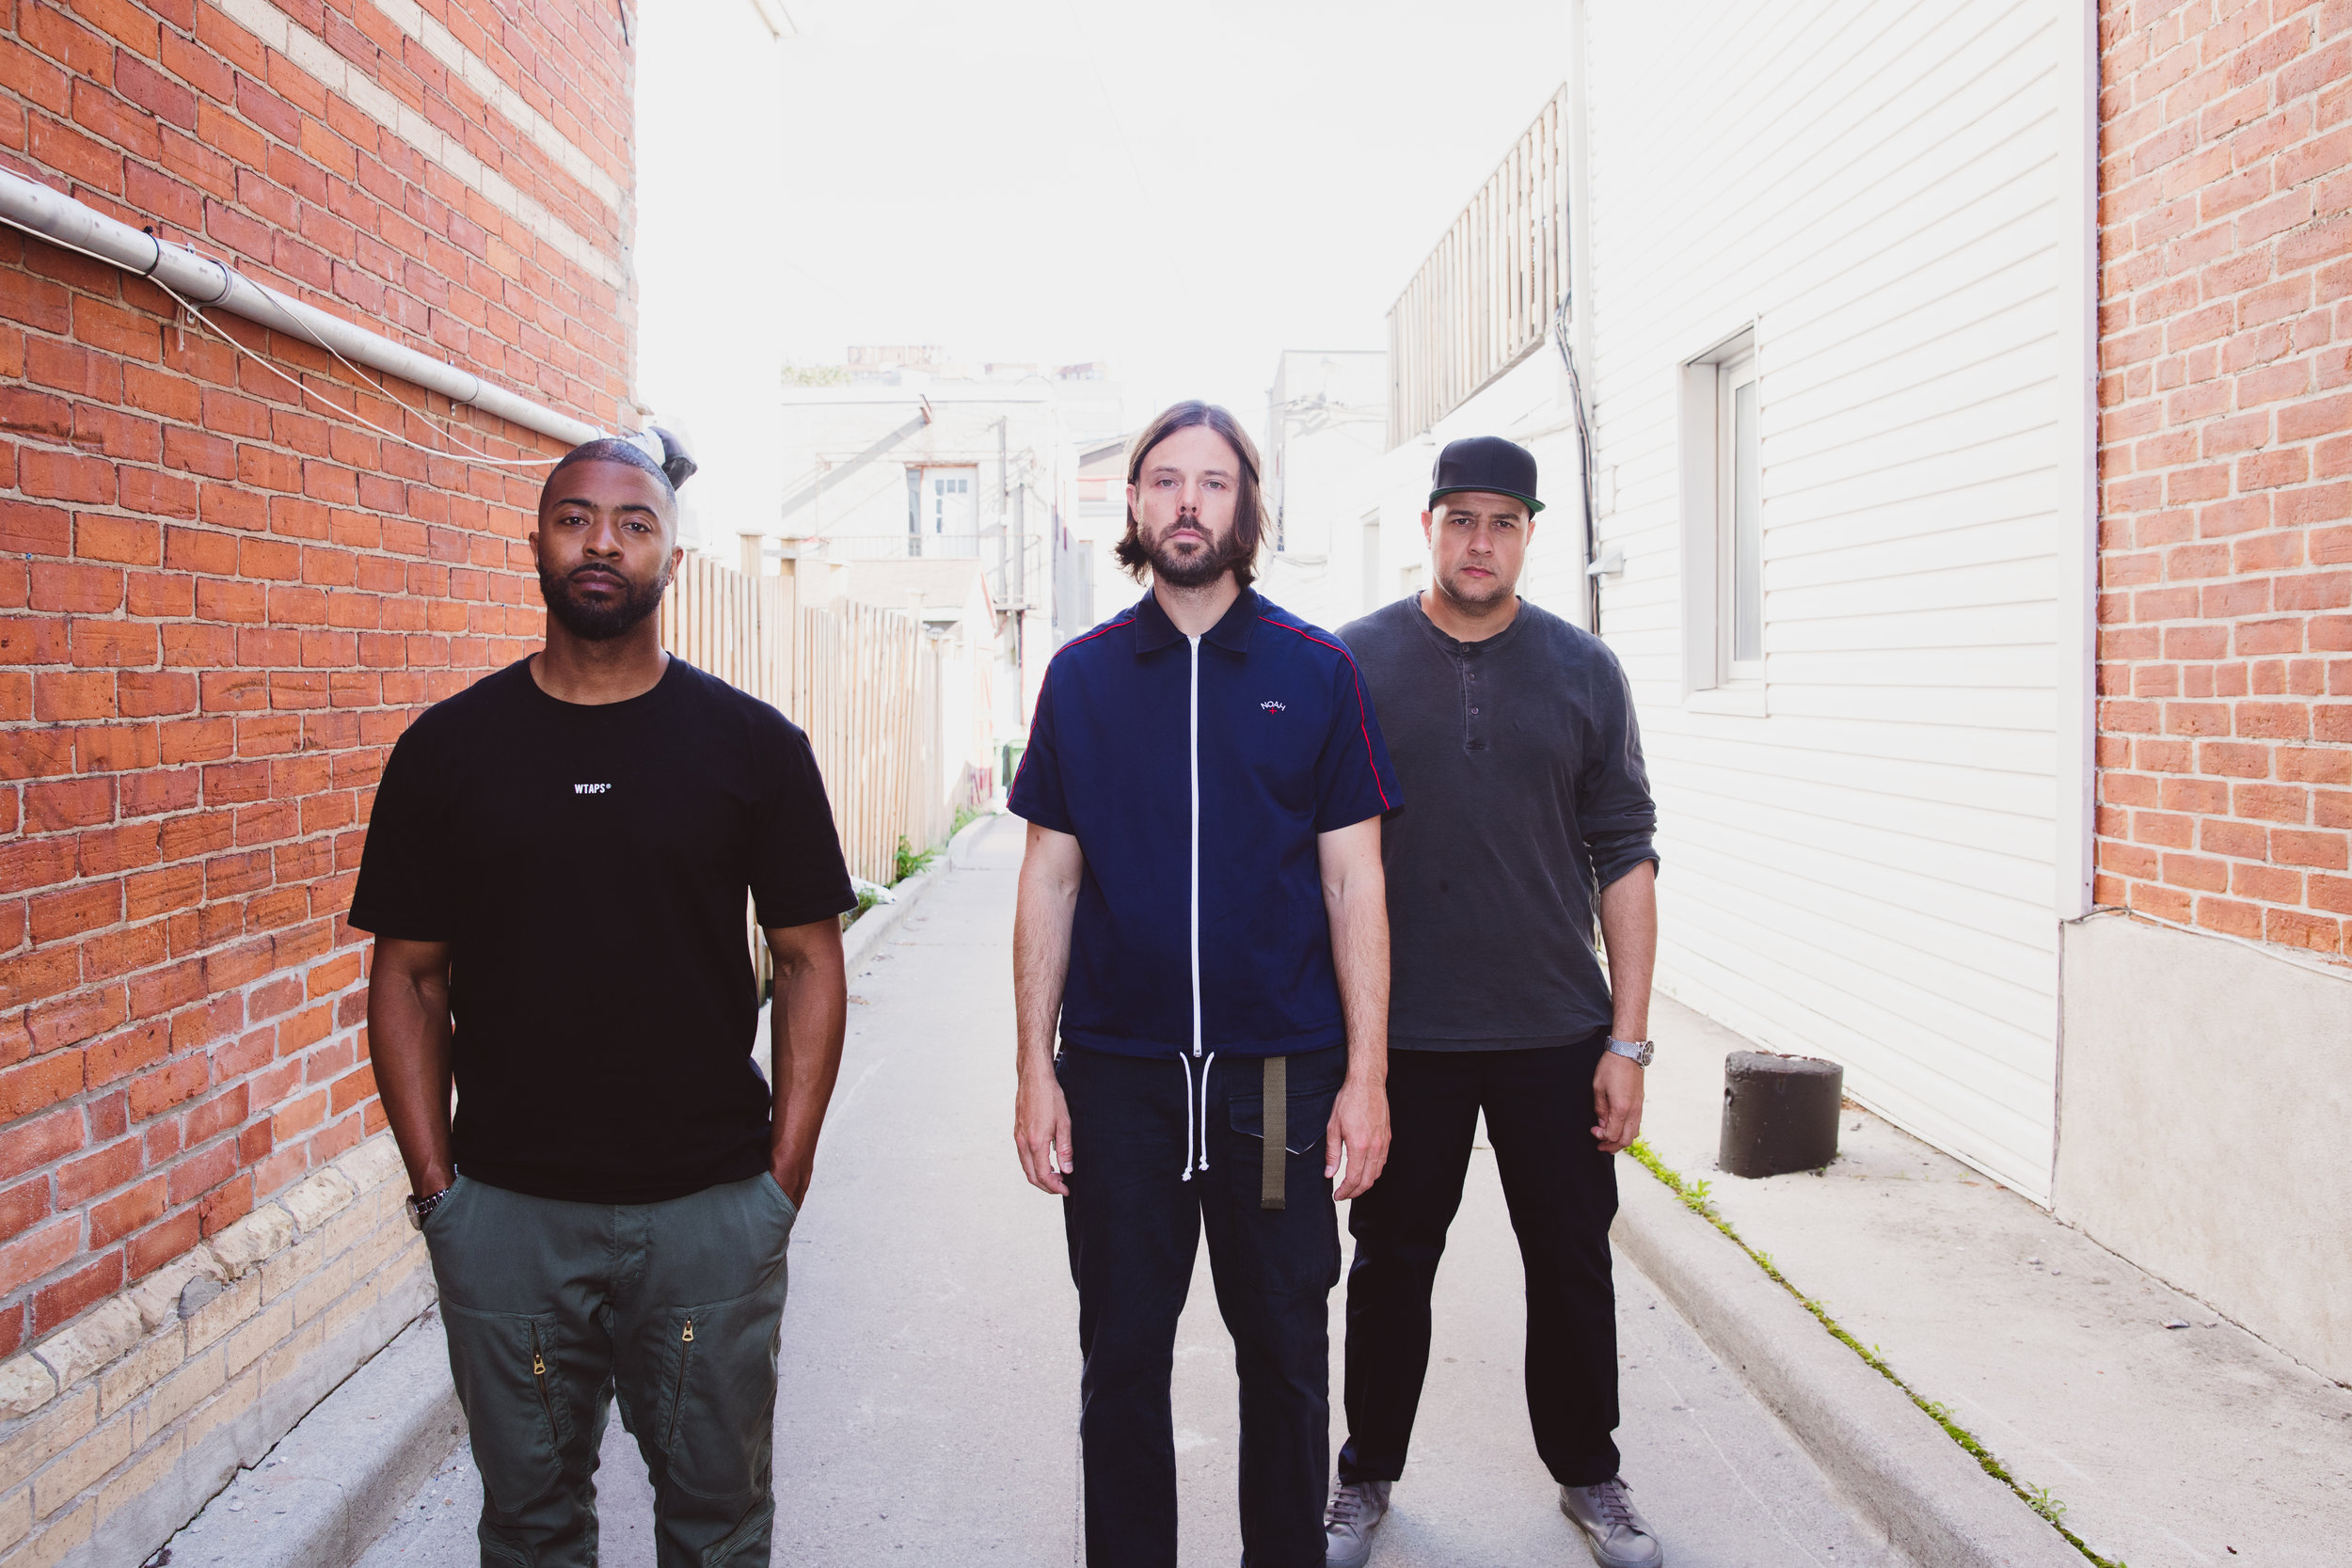 Pictured above from L to R KEYS N KRATES David Matisse, Jr. Flo., Adam Tune. Photo credit: Rhyan Correia